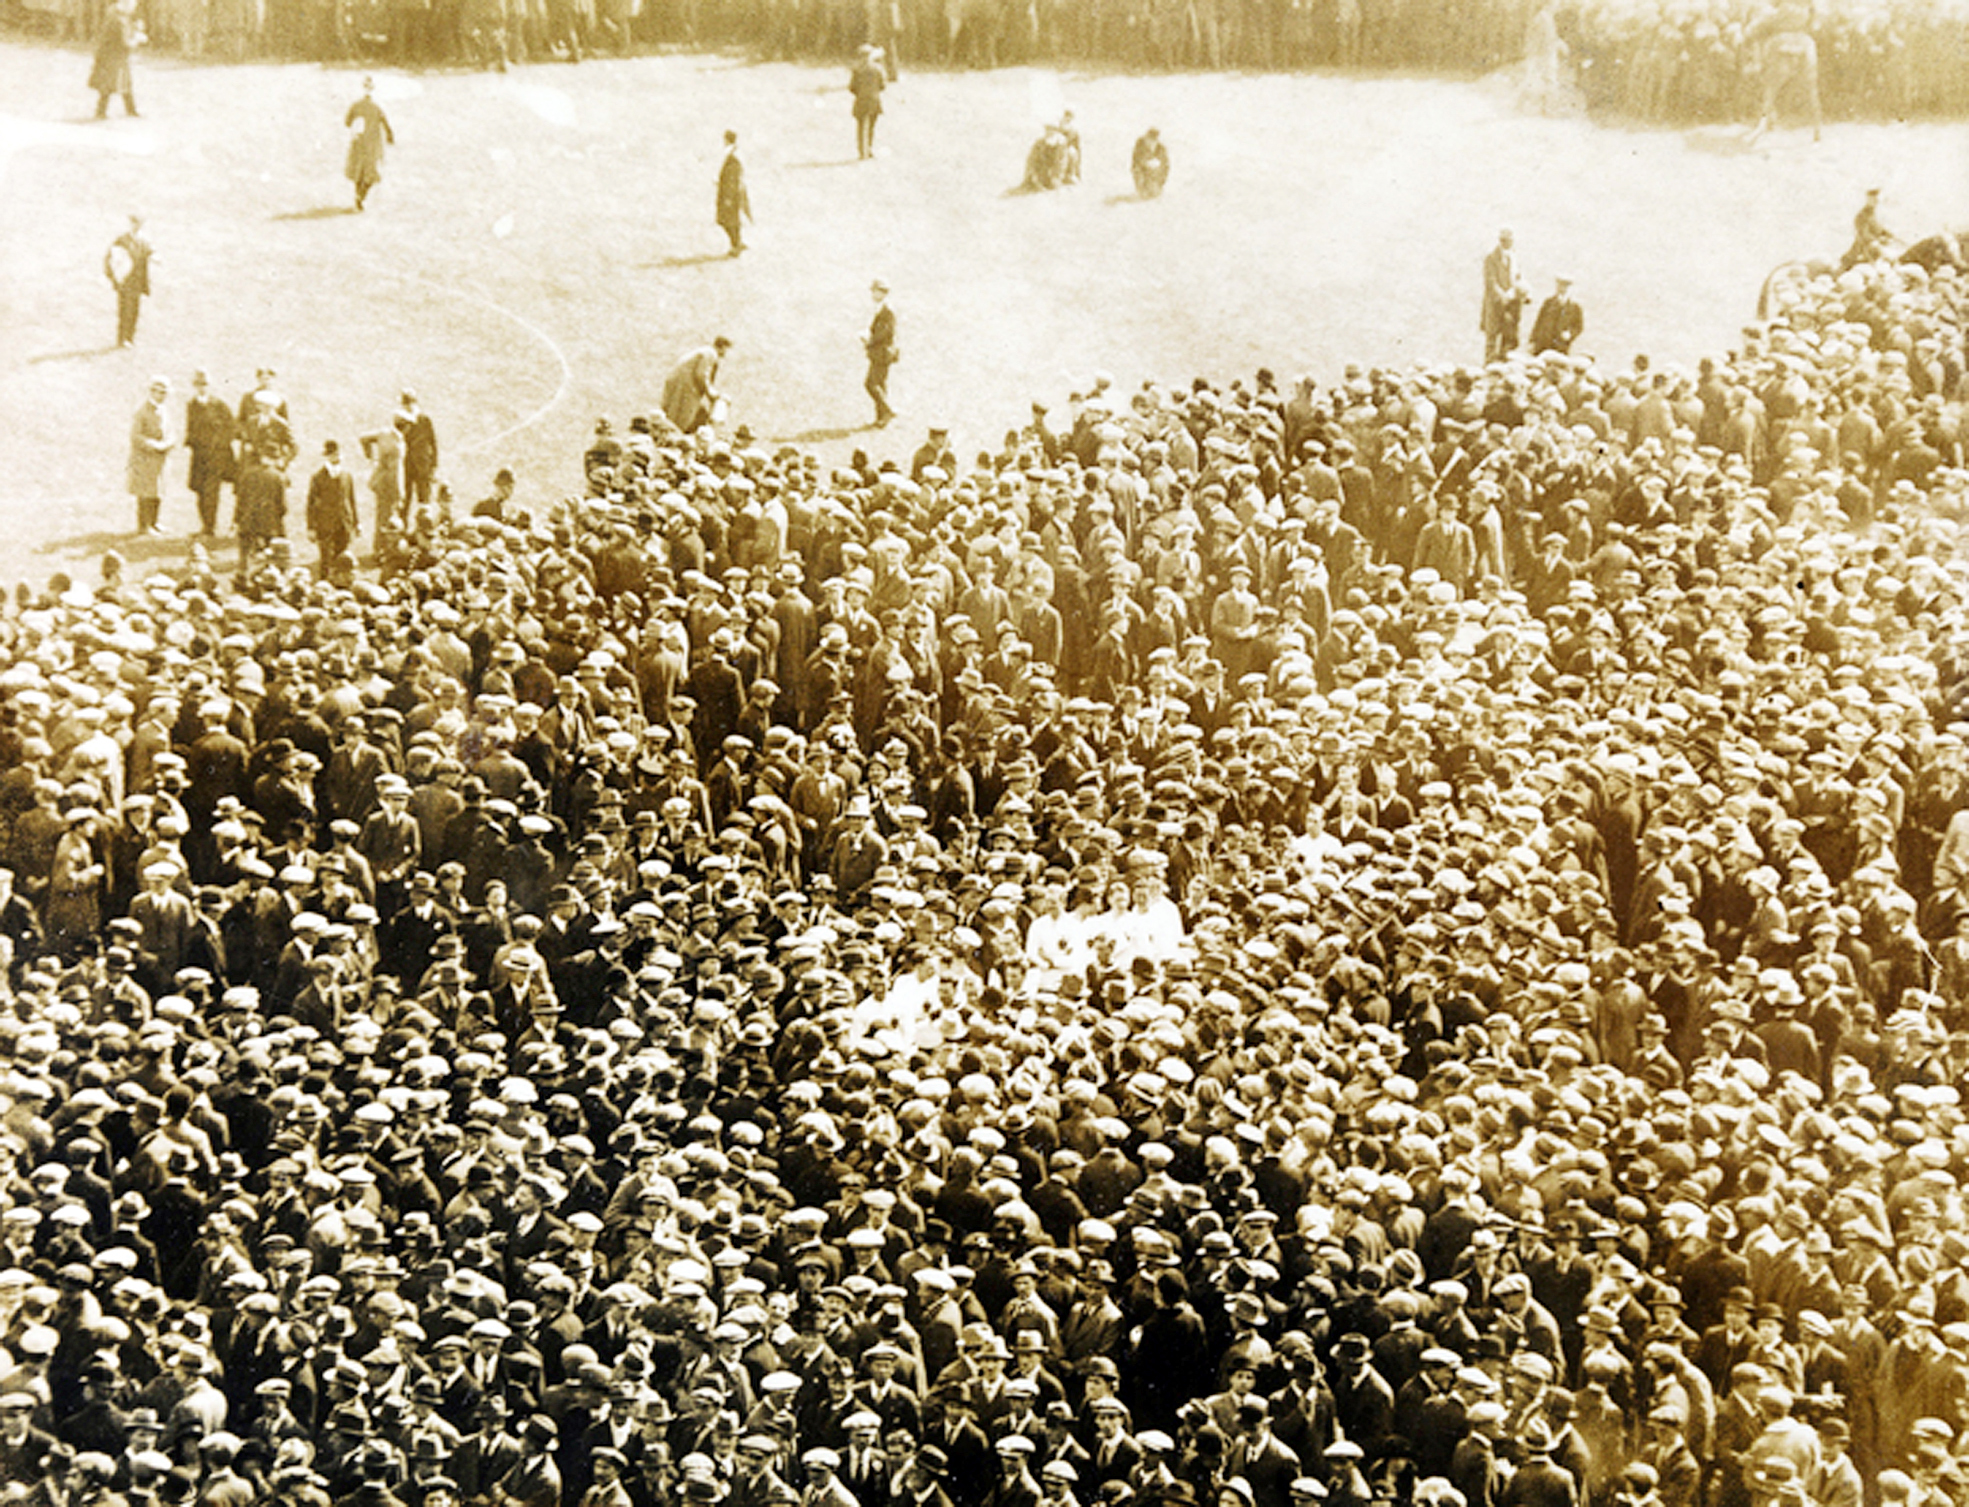 Historic 1923 Bolton Wanderers 'white horse' FA Cup final ticket could be sold for £600